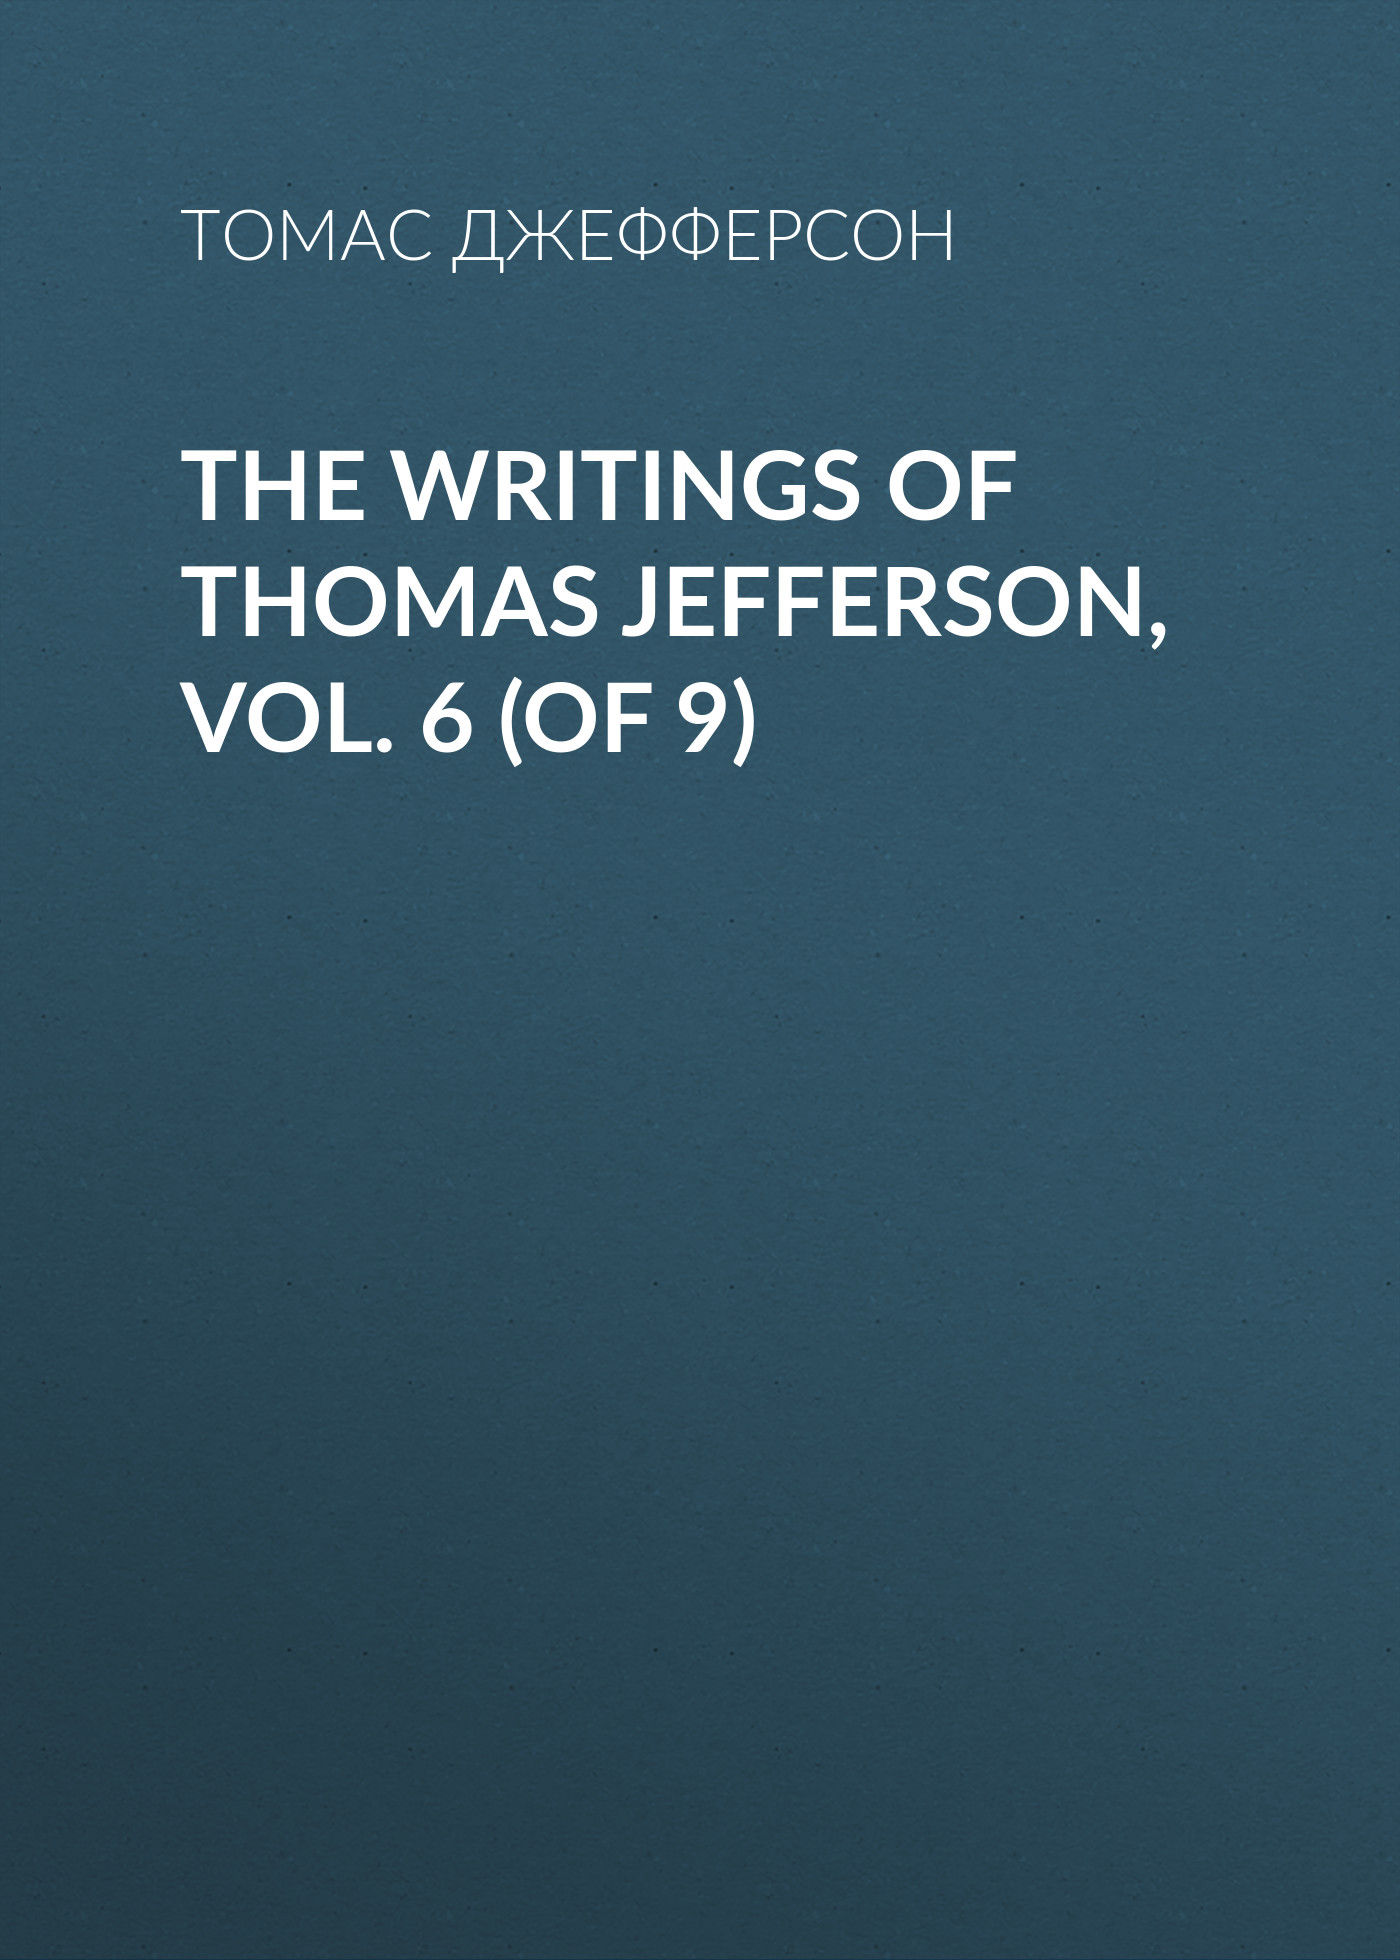 Томас Джефферсон The Writings of Thomas Jefferson, Vol. 6 (of 9) jefferson starship the definitive concert